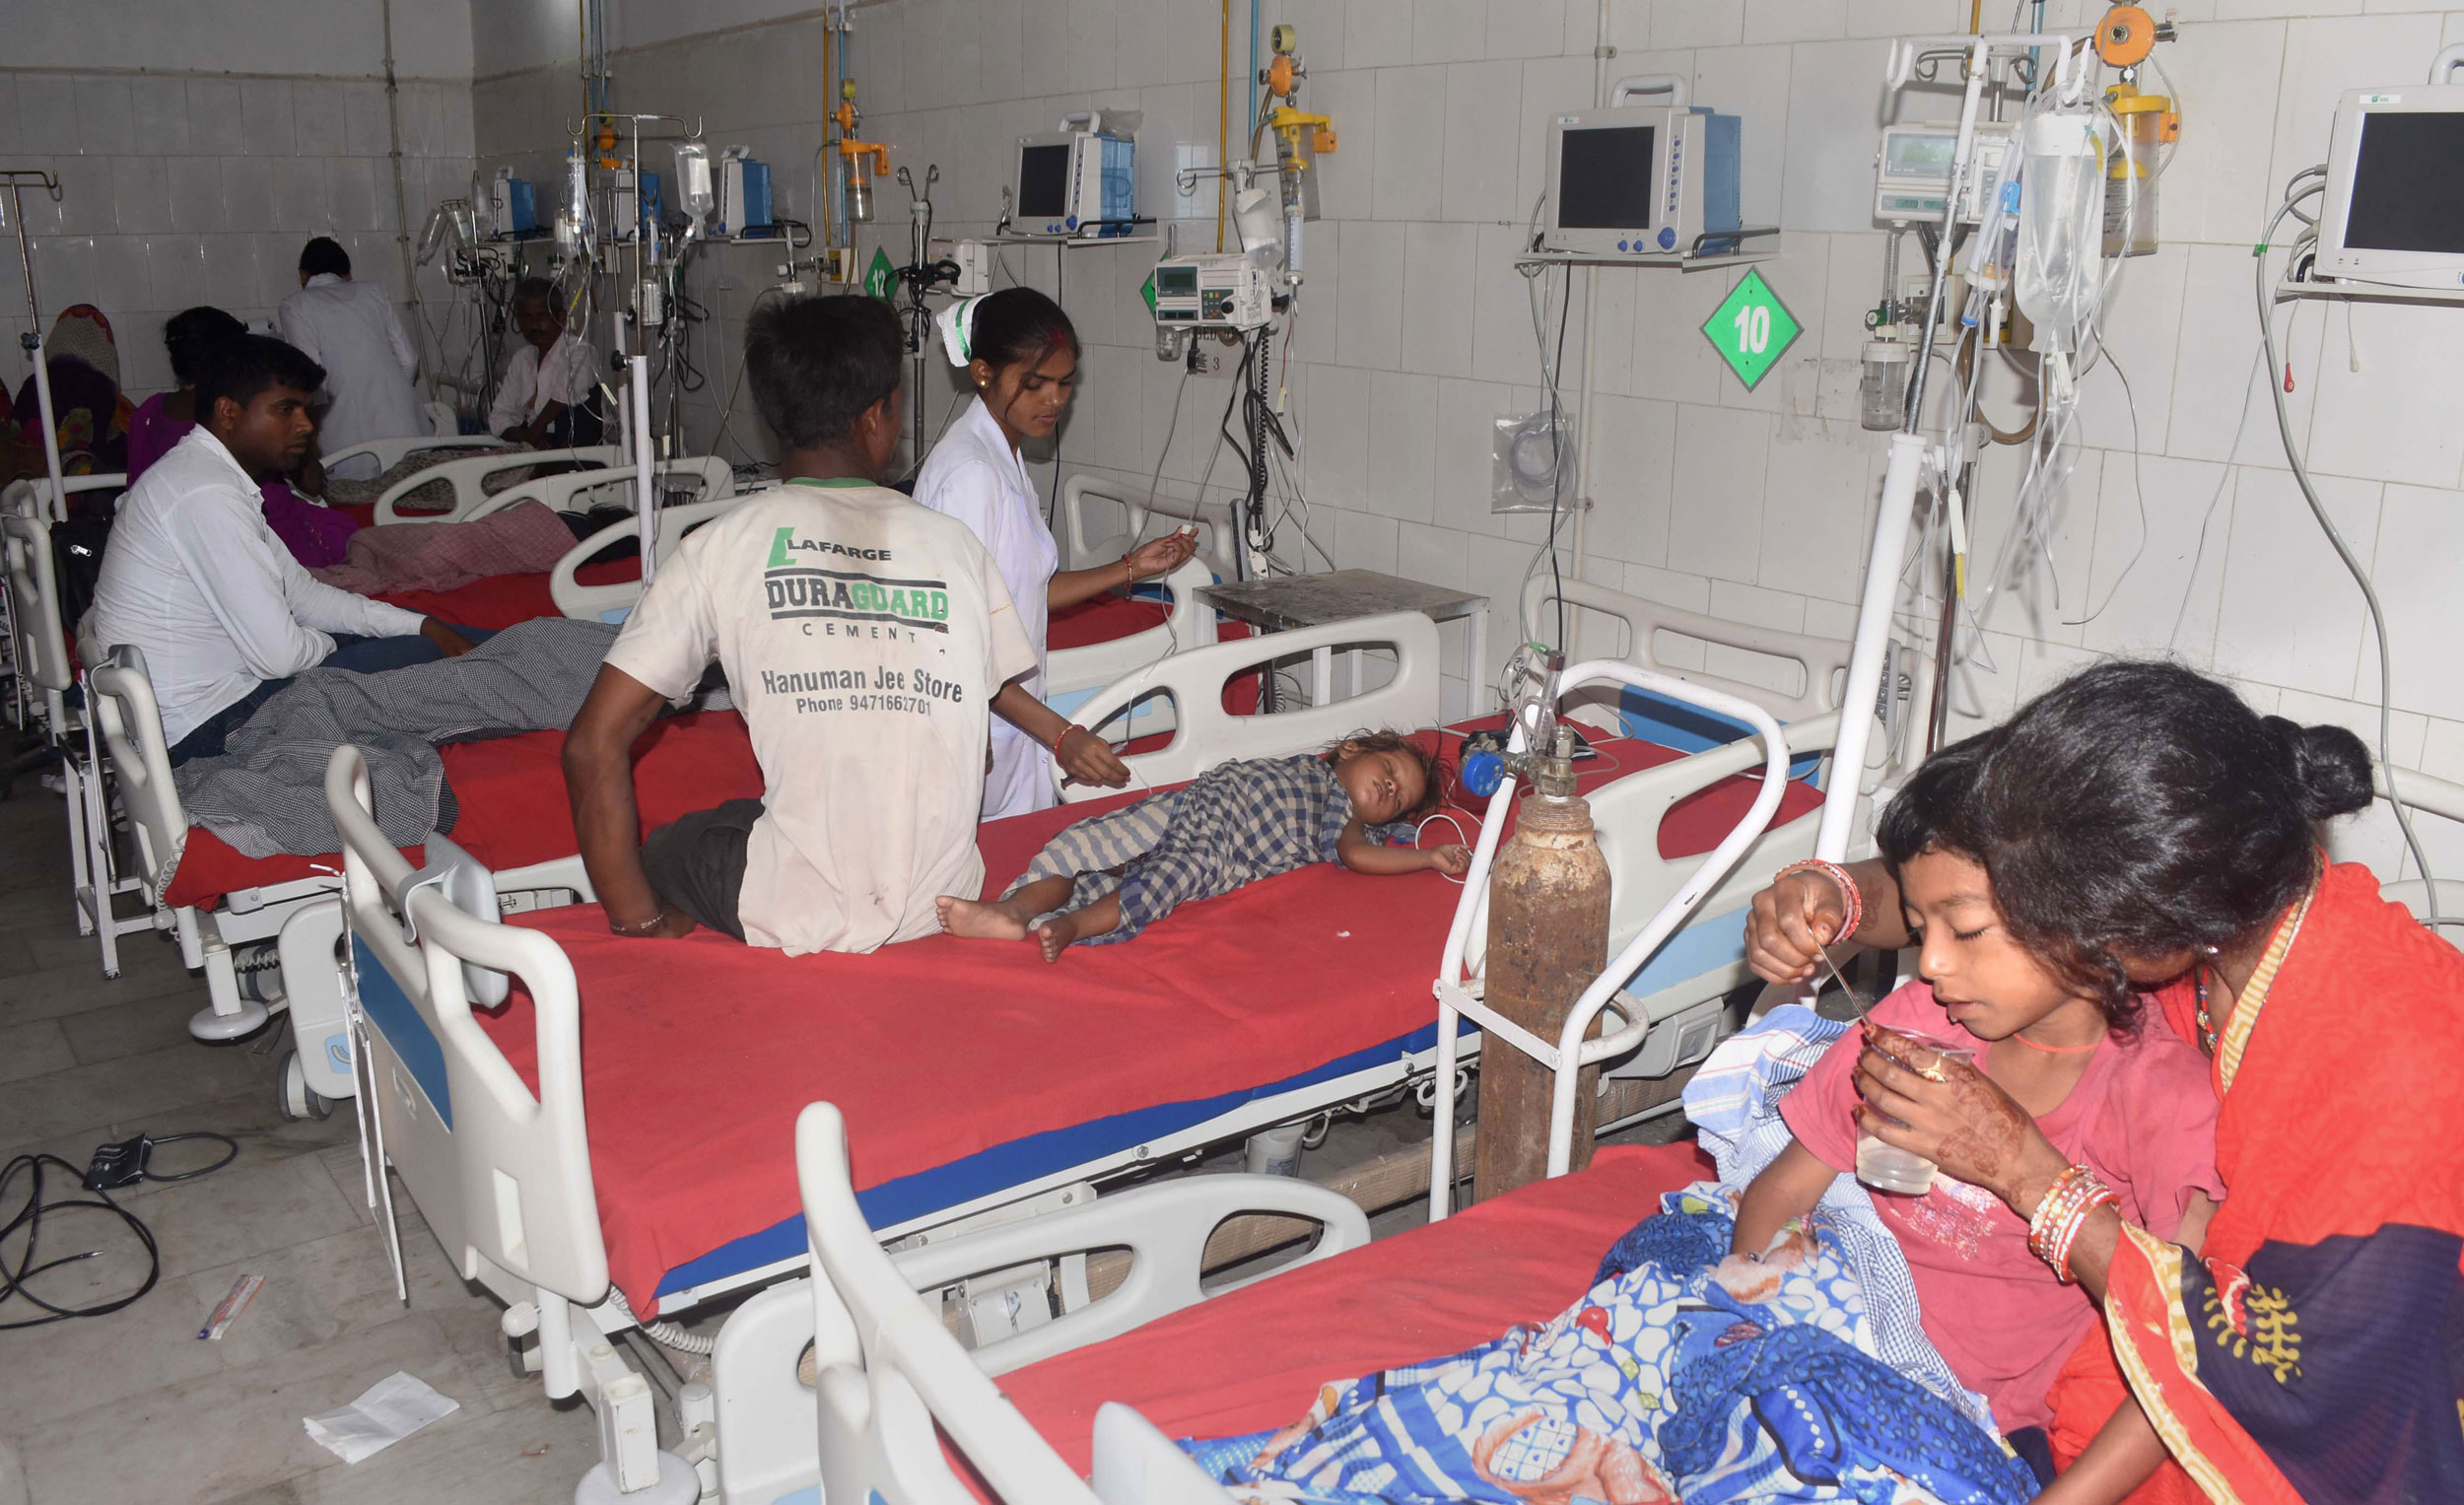 Children with Acute Encephalitis Syndrome being treated at a hospital in Muzaffarpur, on June 15, 2019.